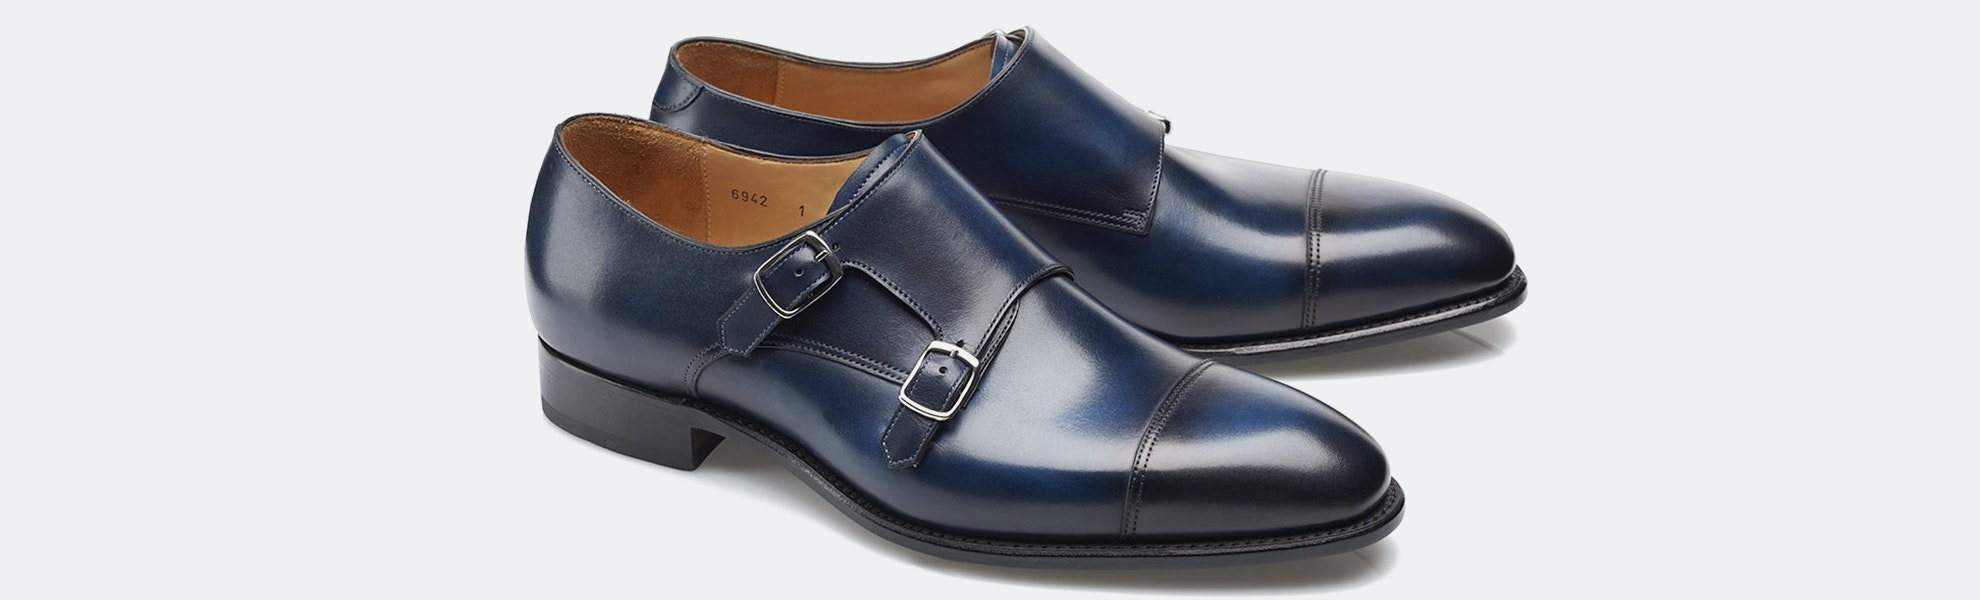 Carlos Santos Monkstrap Shoes